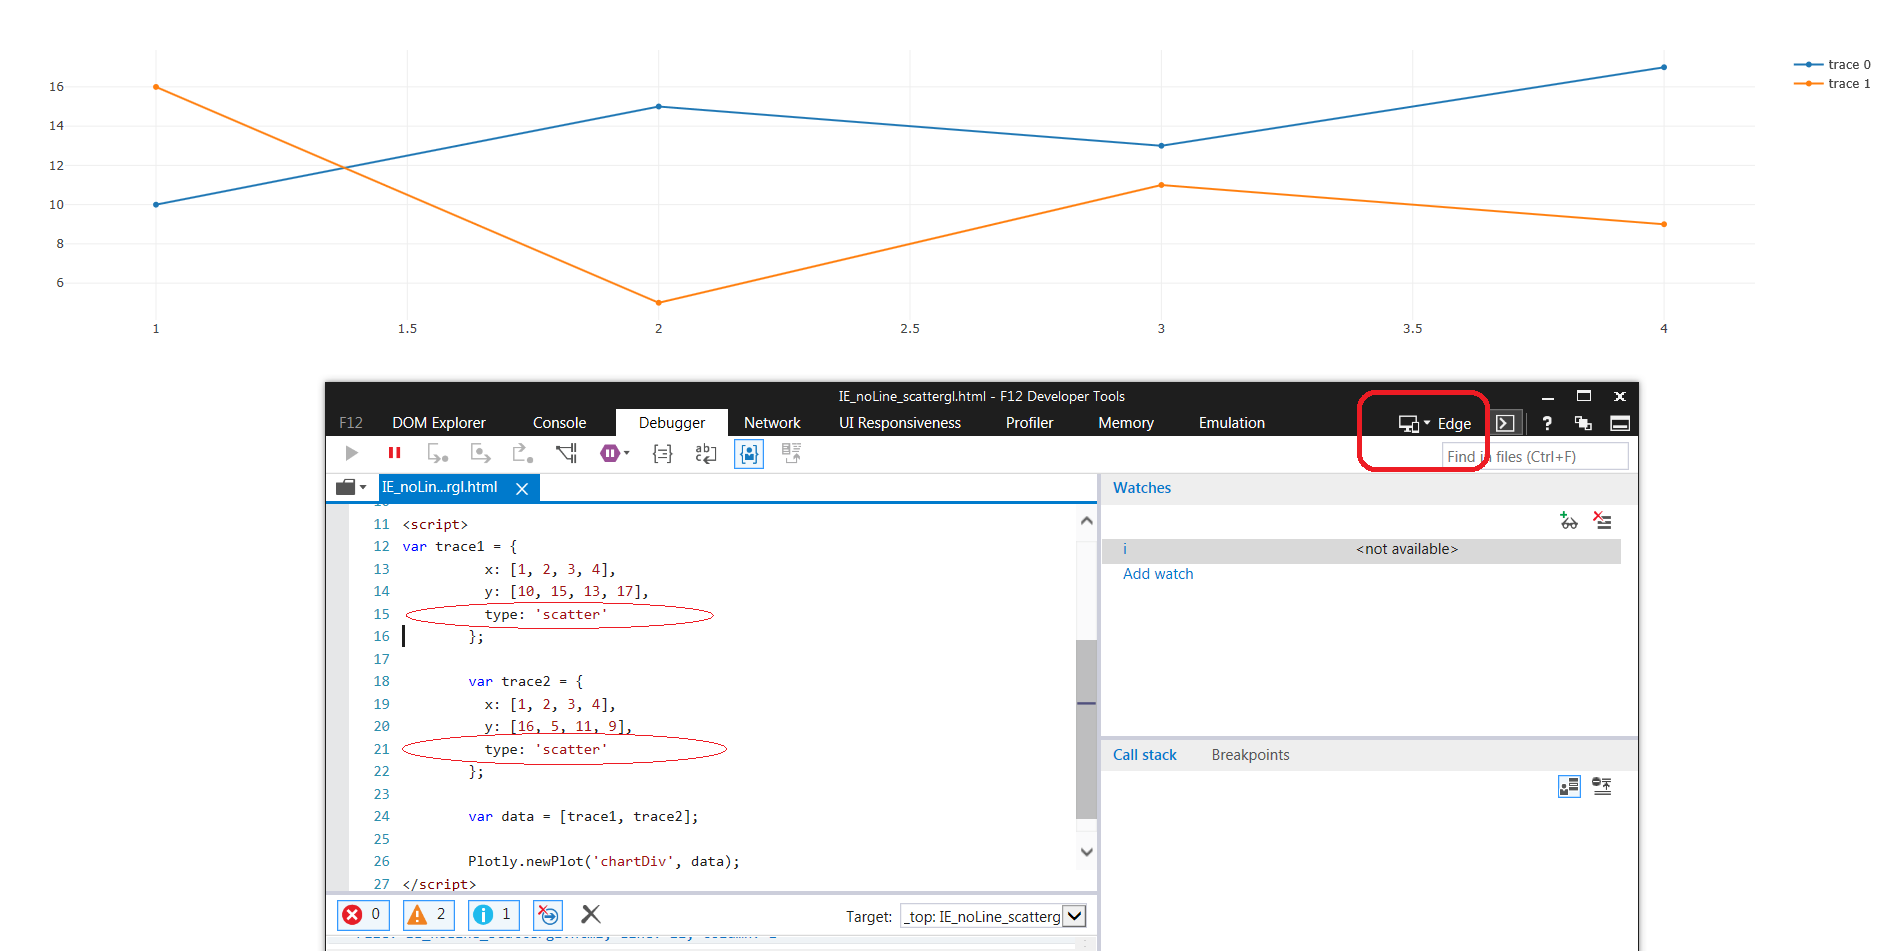 While using IE-Edge, Plotly displays nothing when 'scattergl' is